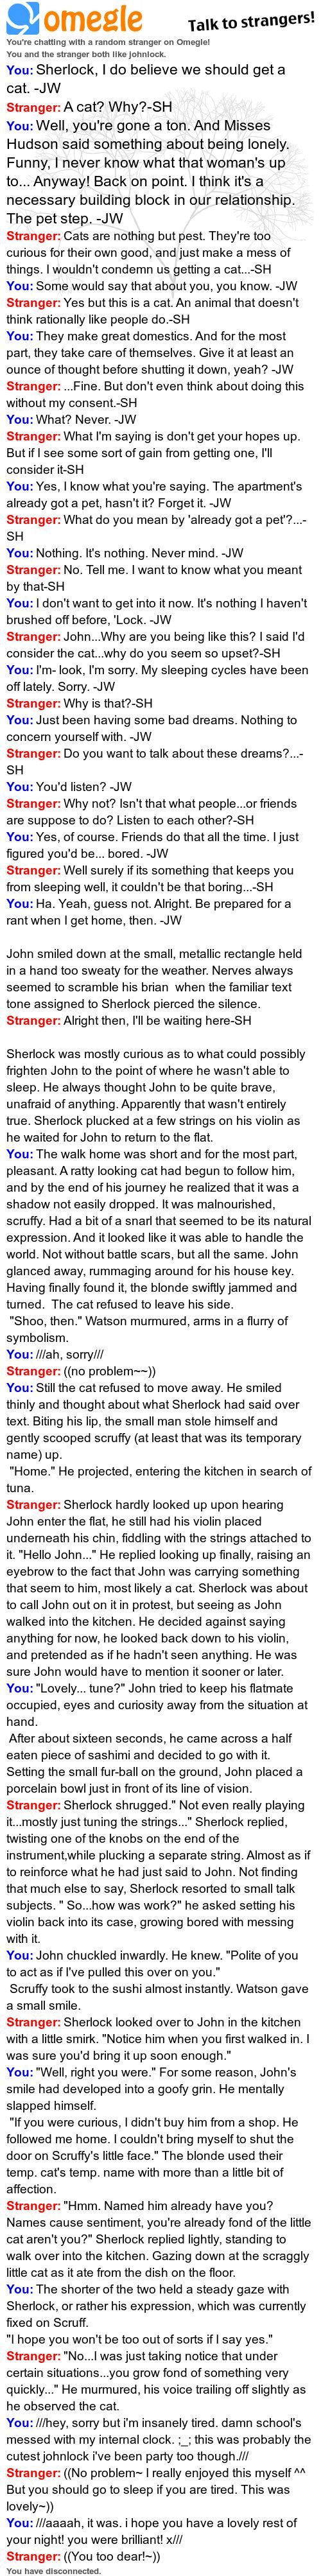 Omegle chat log, Johnlock >Overall well done for an improvised para rp!